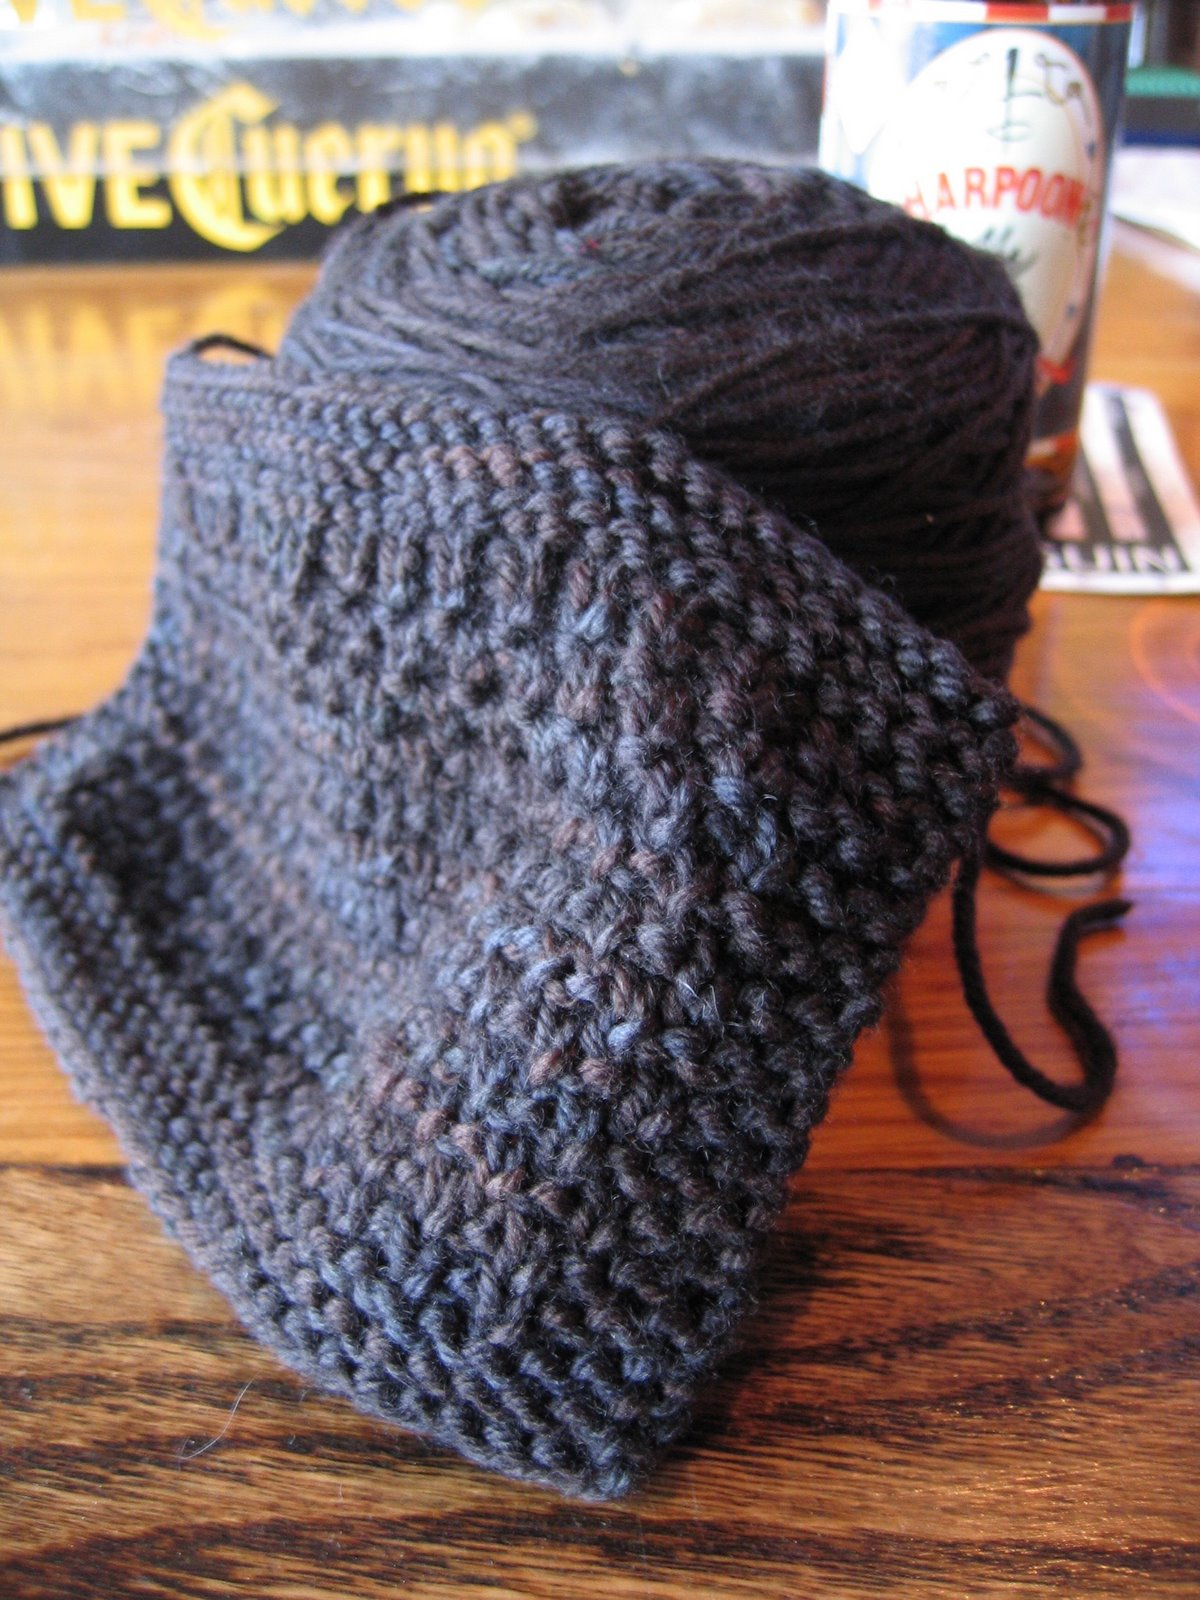 [Inishmore+swatch,+Dream+in+Color+classy+worsted+yarn]